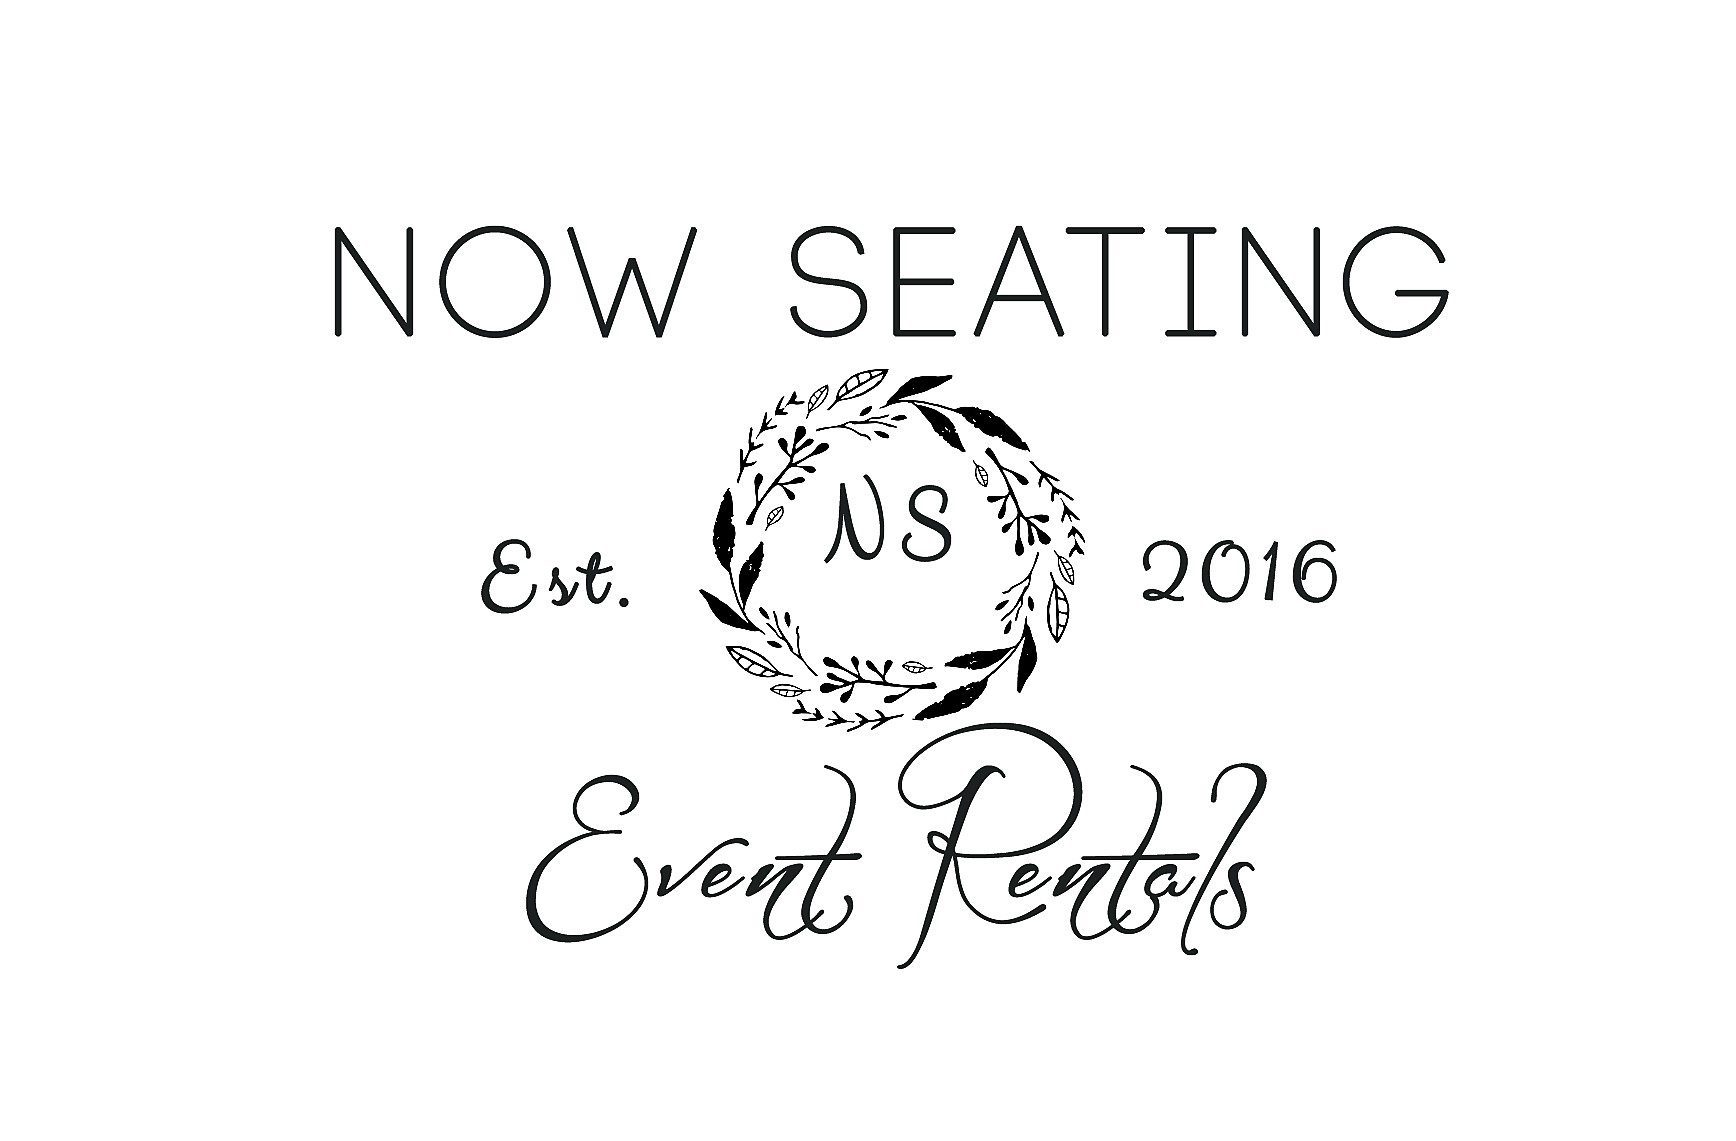 Now Seating Event Rentals